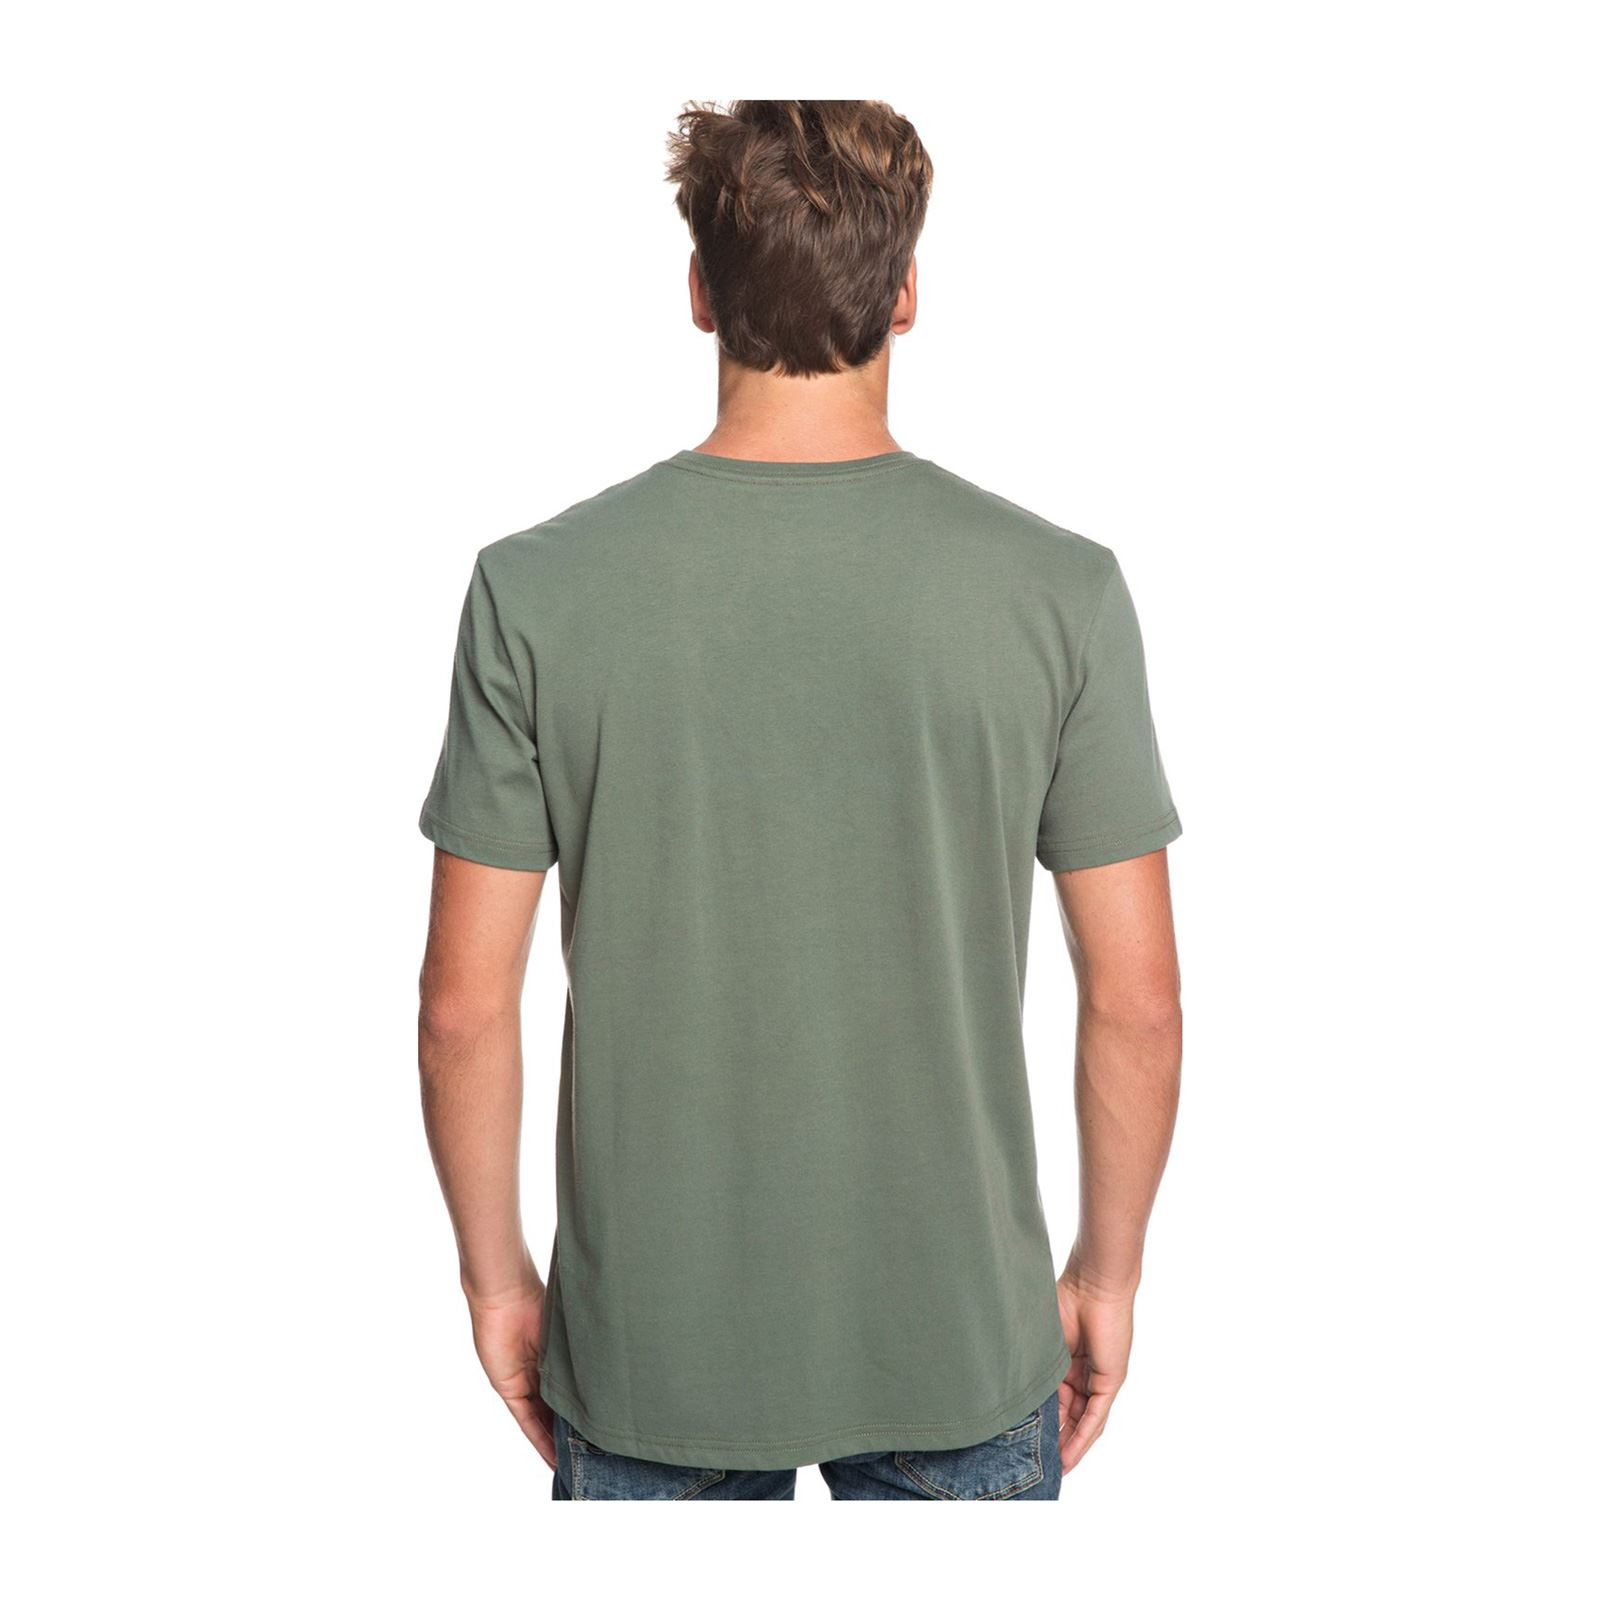 Manches Kaki Courtes Quiksilver T shirt HEnYwgWqvx